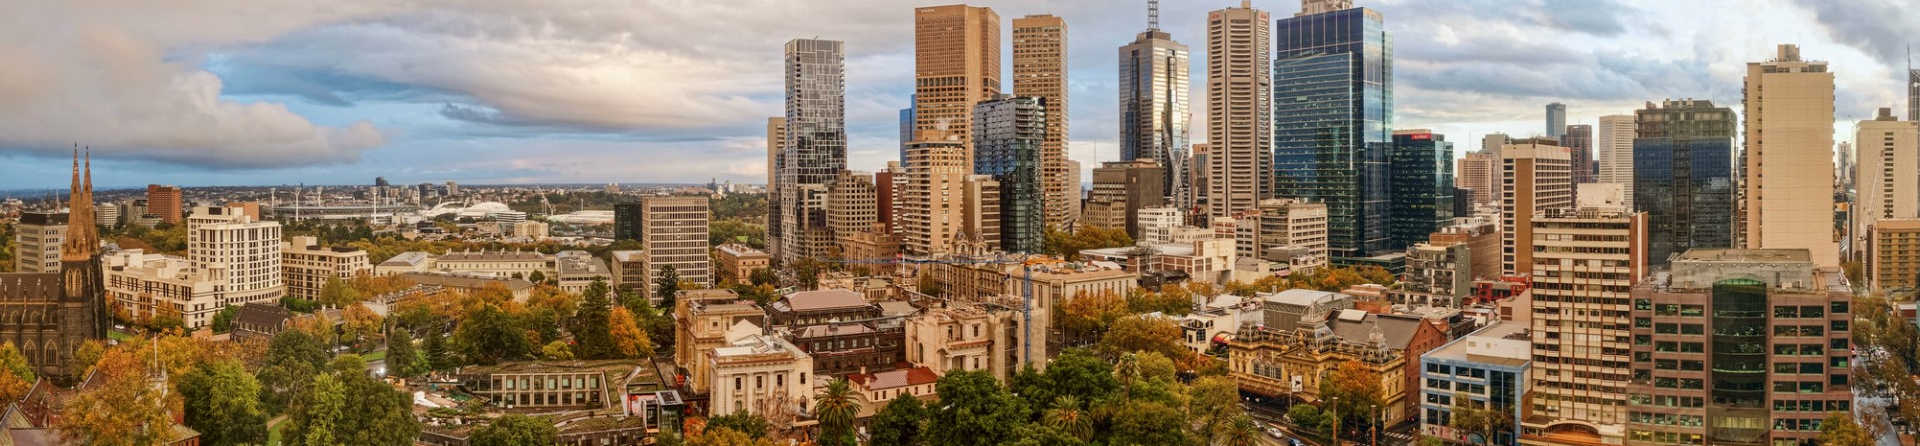 What is Melbourne known for?